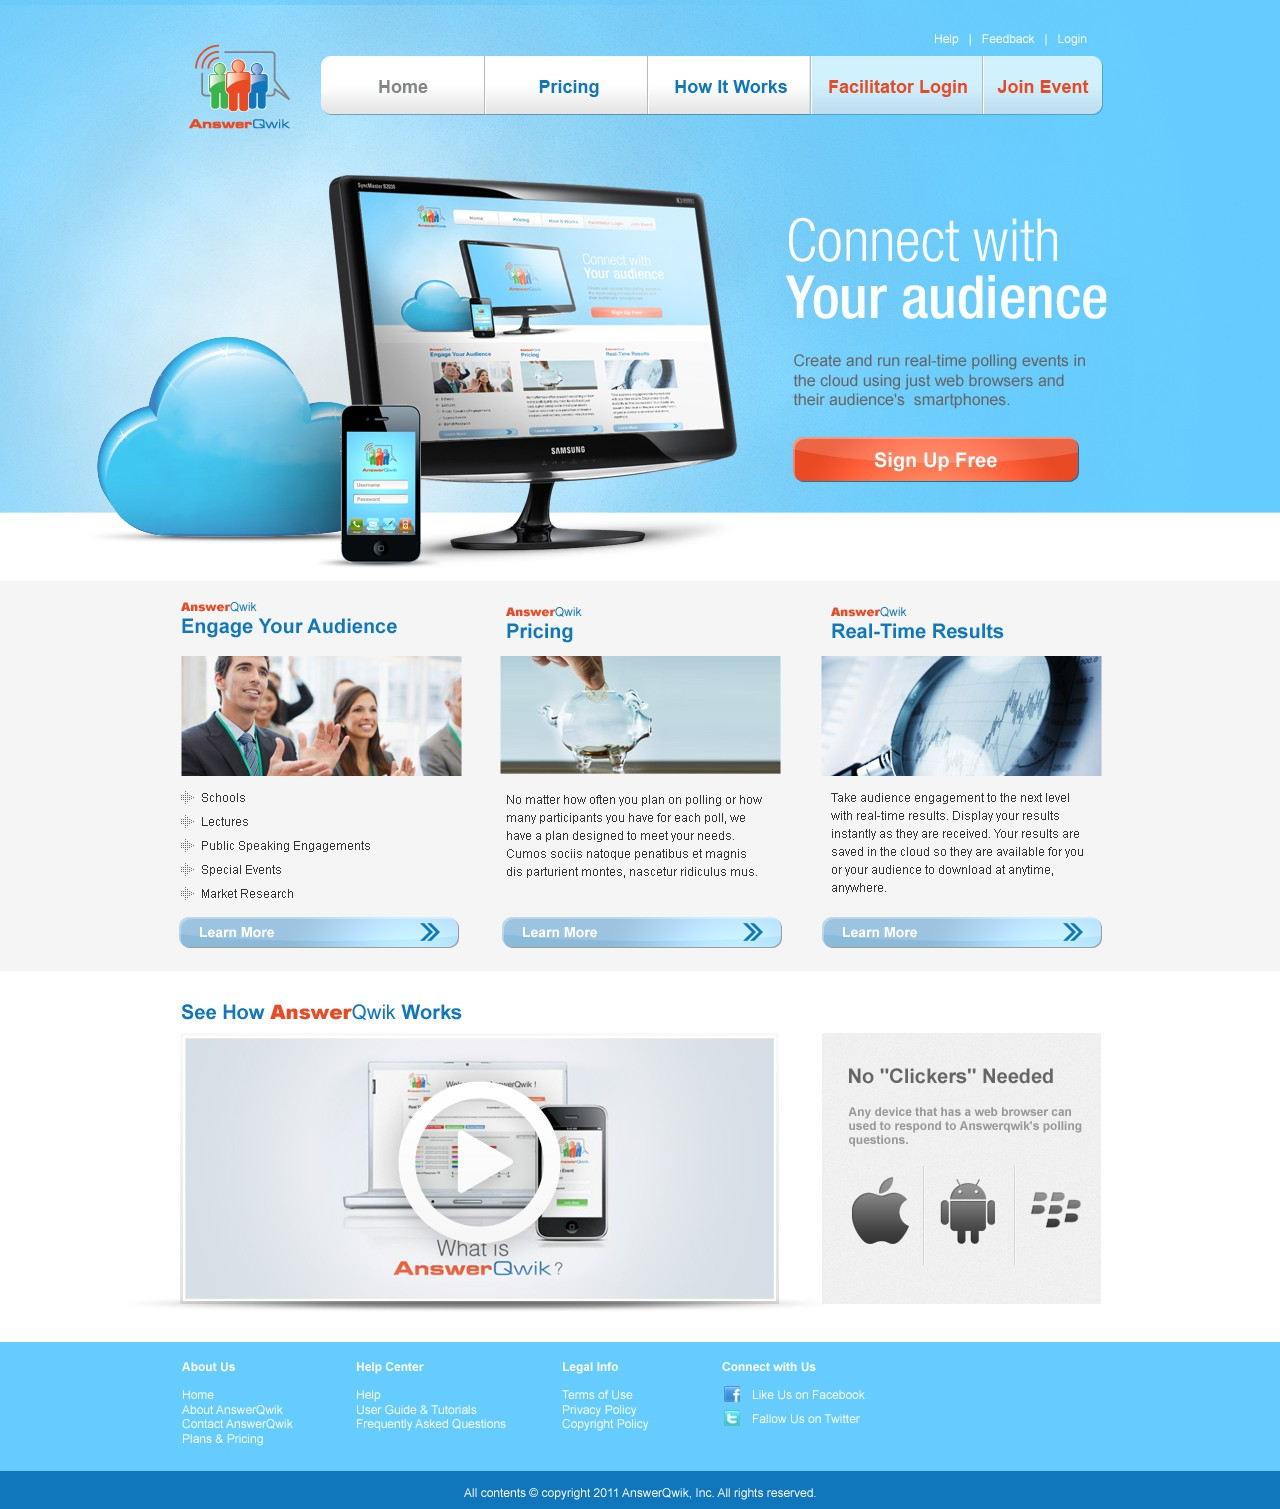 Help AnswerQwik.com convert browsers to buyers!  Web Design for Cloud Business